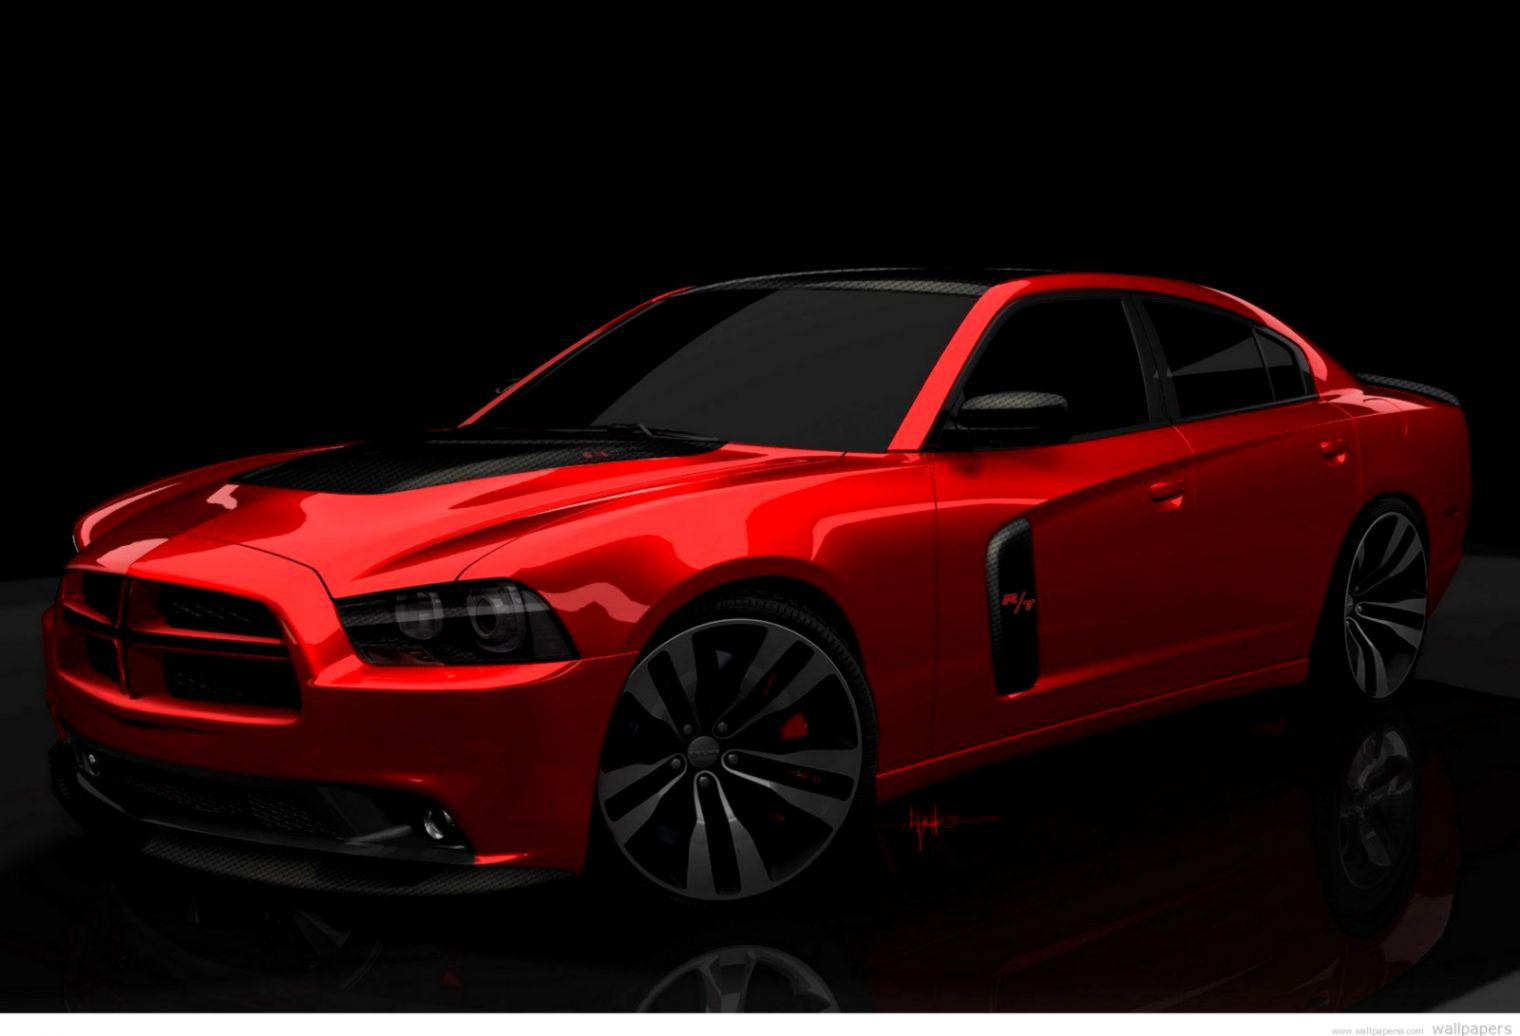 Red Dodge Charger Wallpaper Wallpapers Base